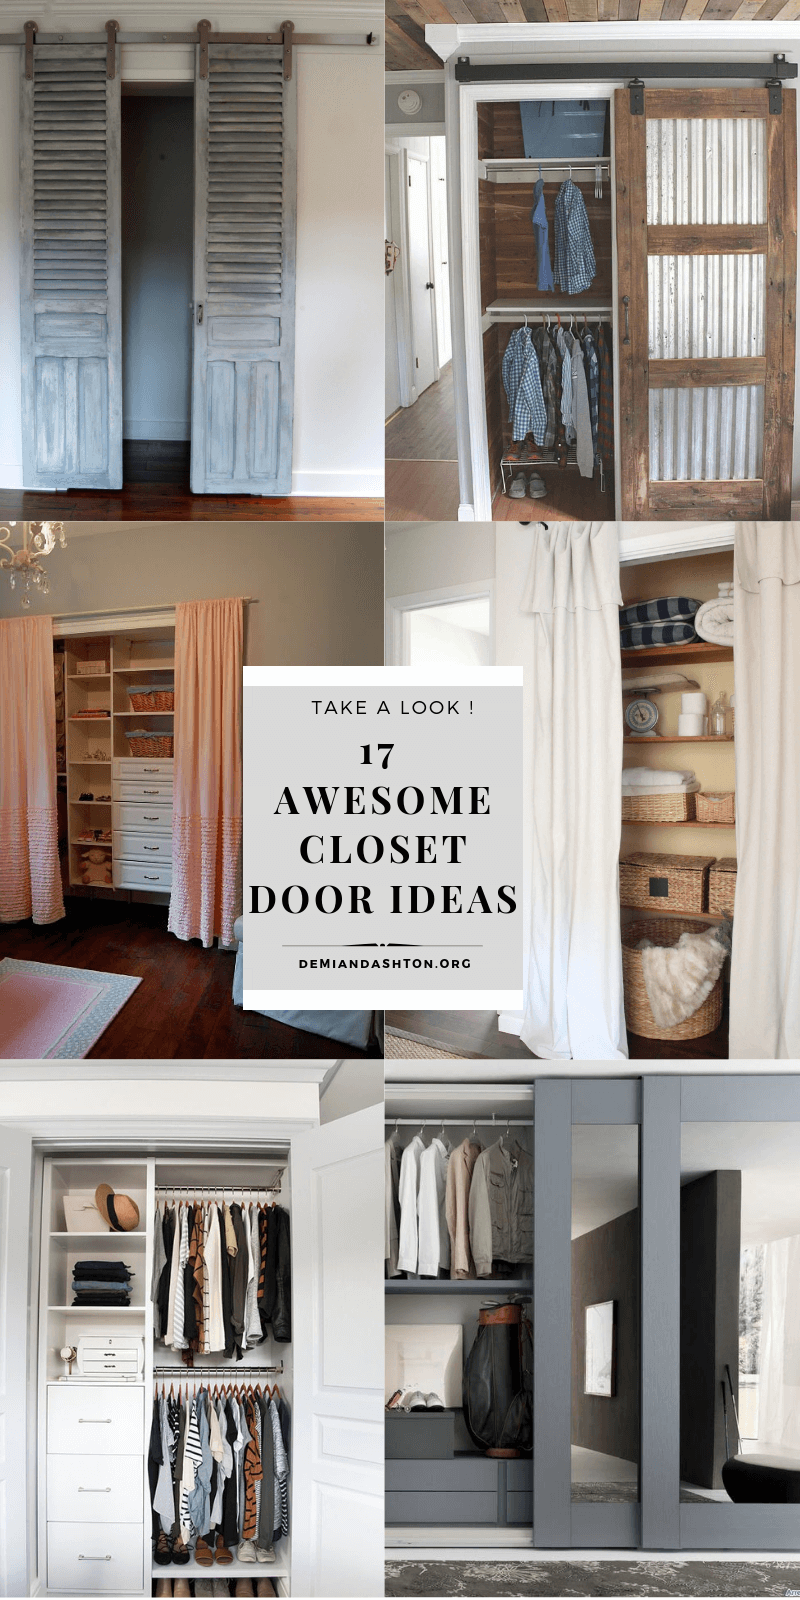 17 Awesome Closet Door Ideas To Make The Space More Unique David On Blog